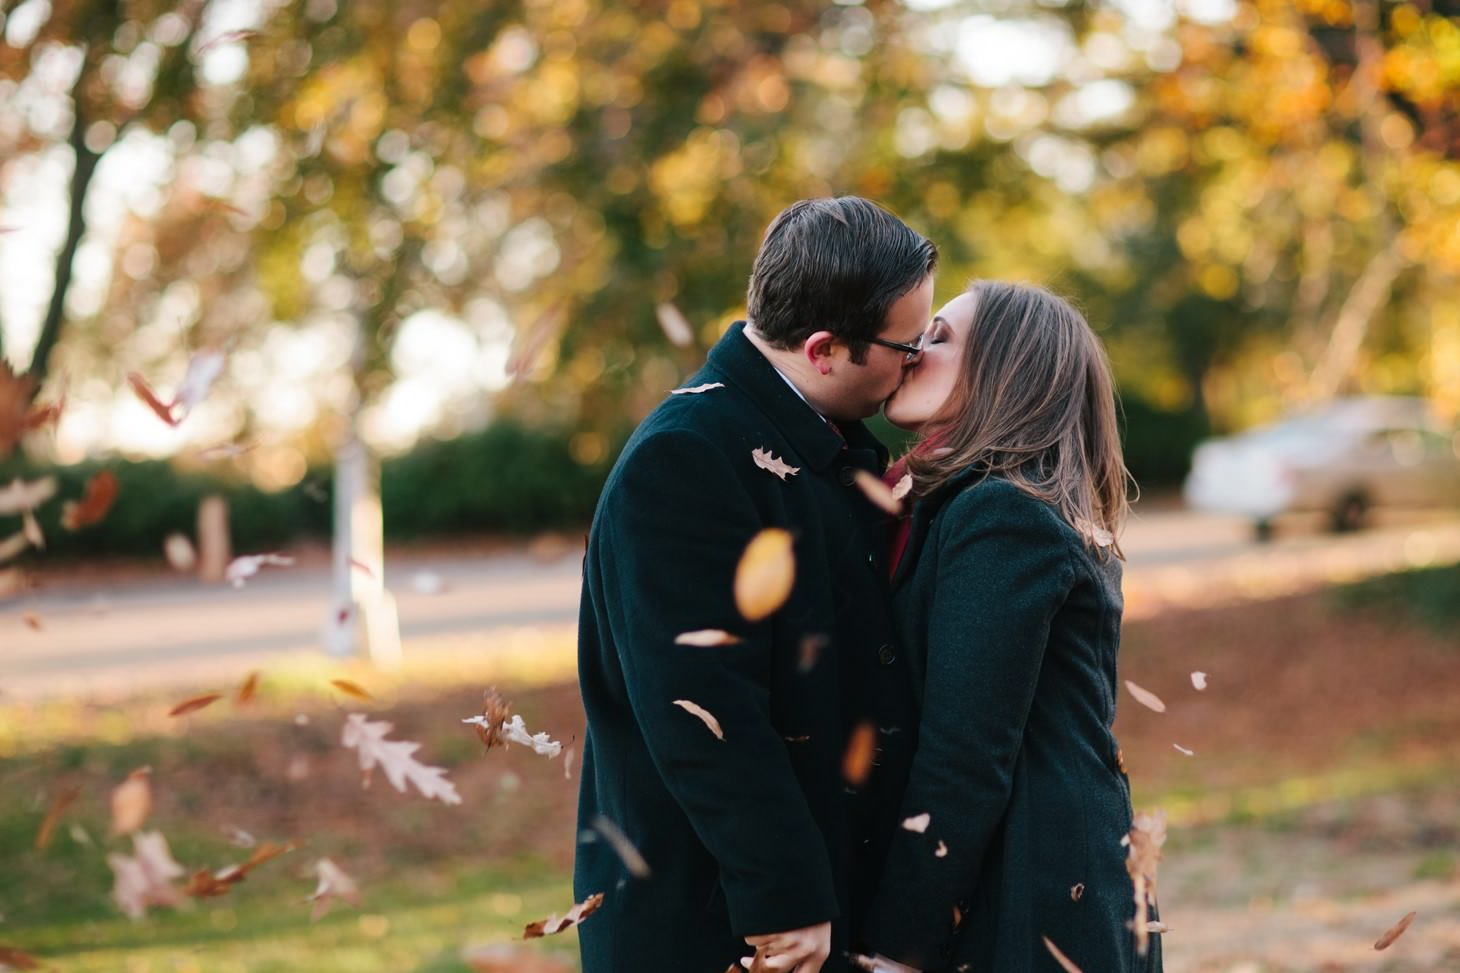 001-nyc-wedding-portrait-photographer-engagement-photos-cloisters-fall-leaves-smitten-chickens.jpg